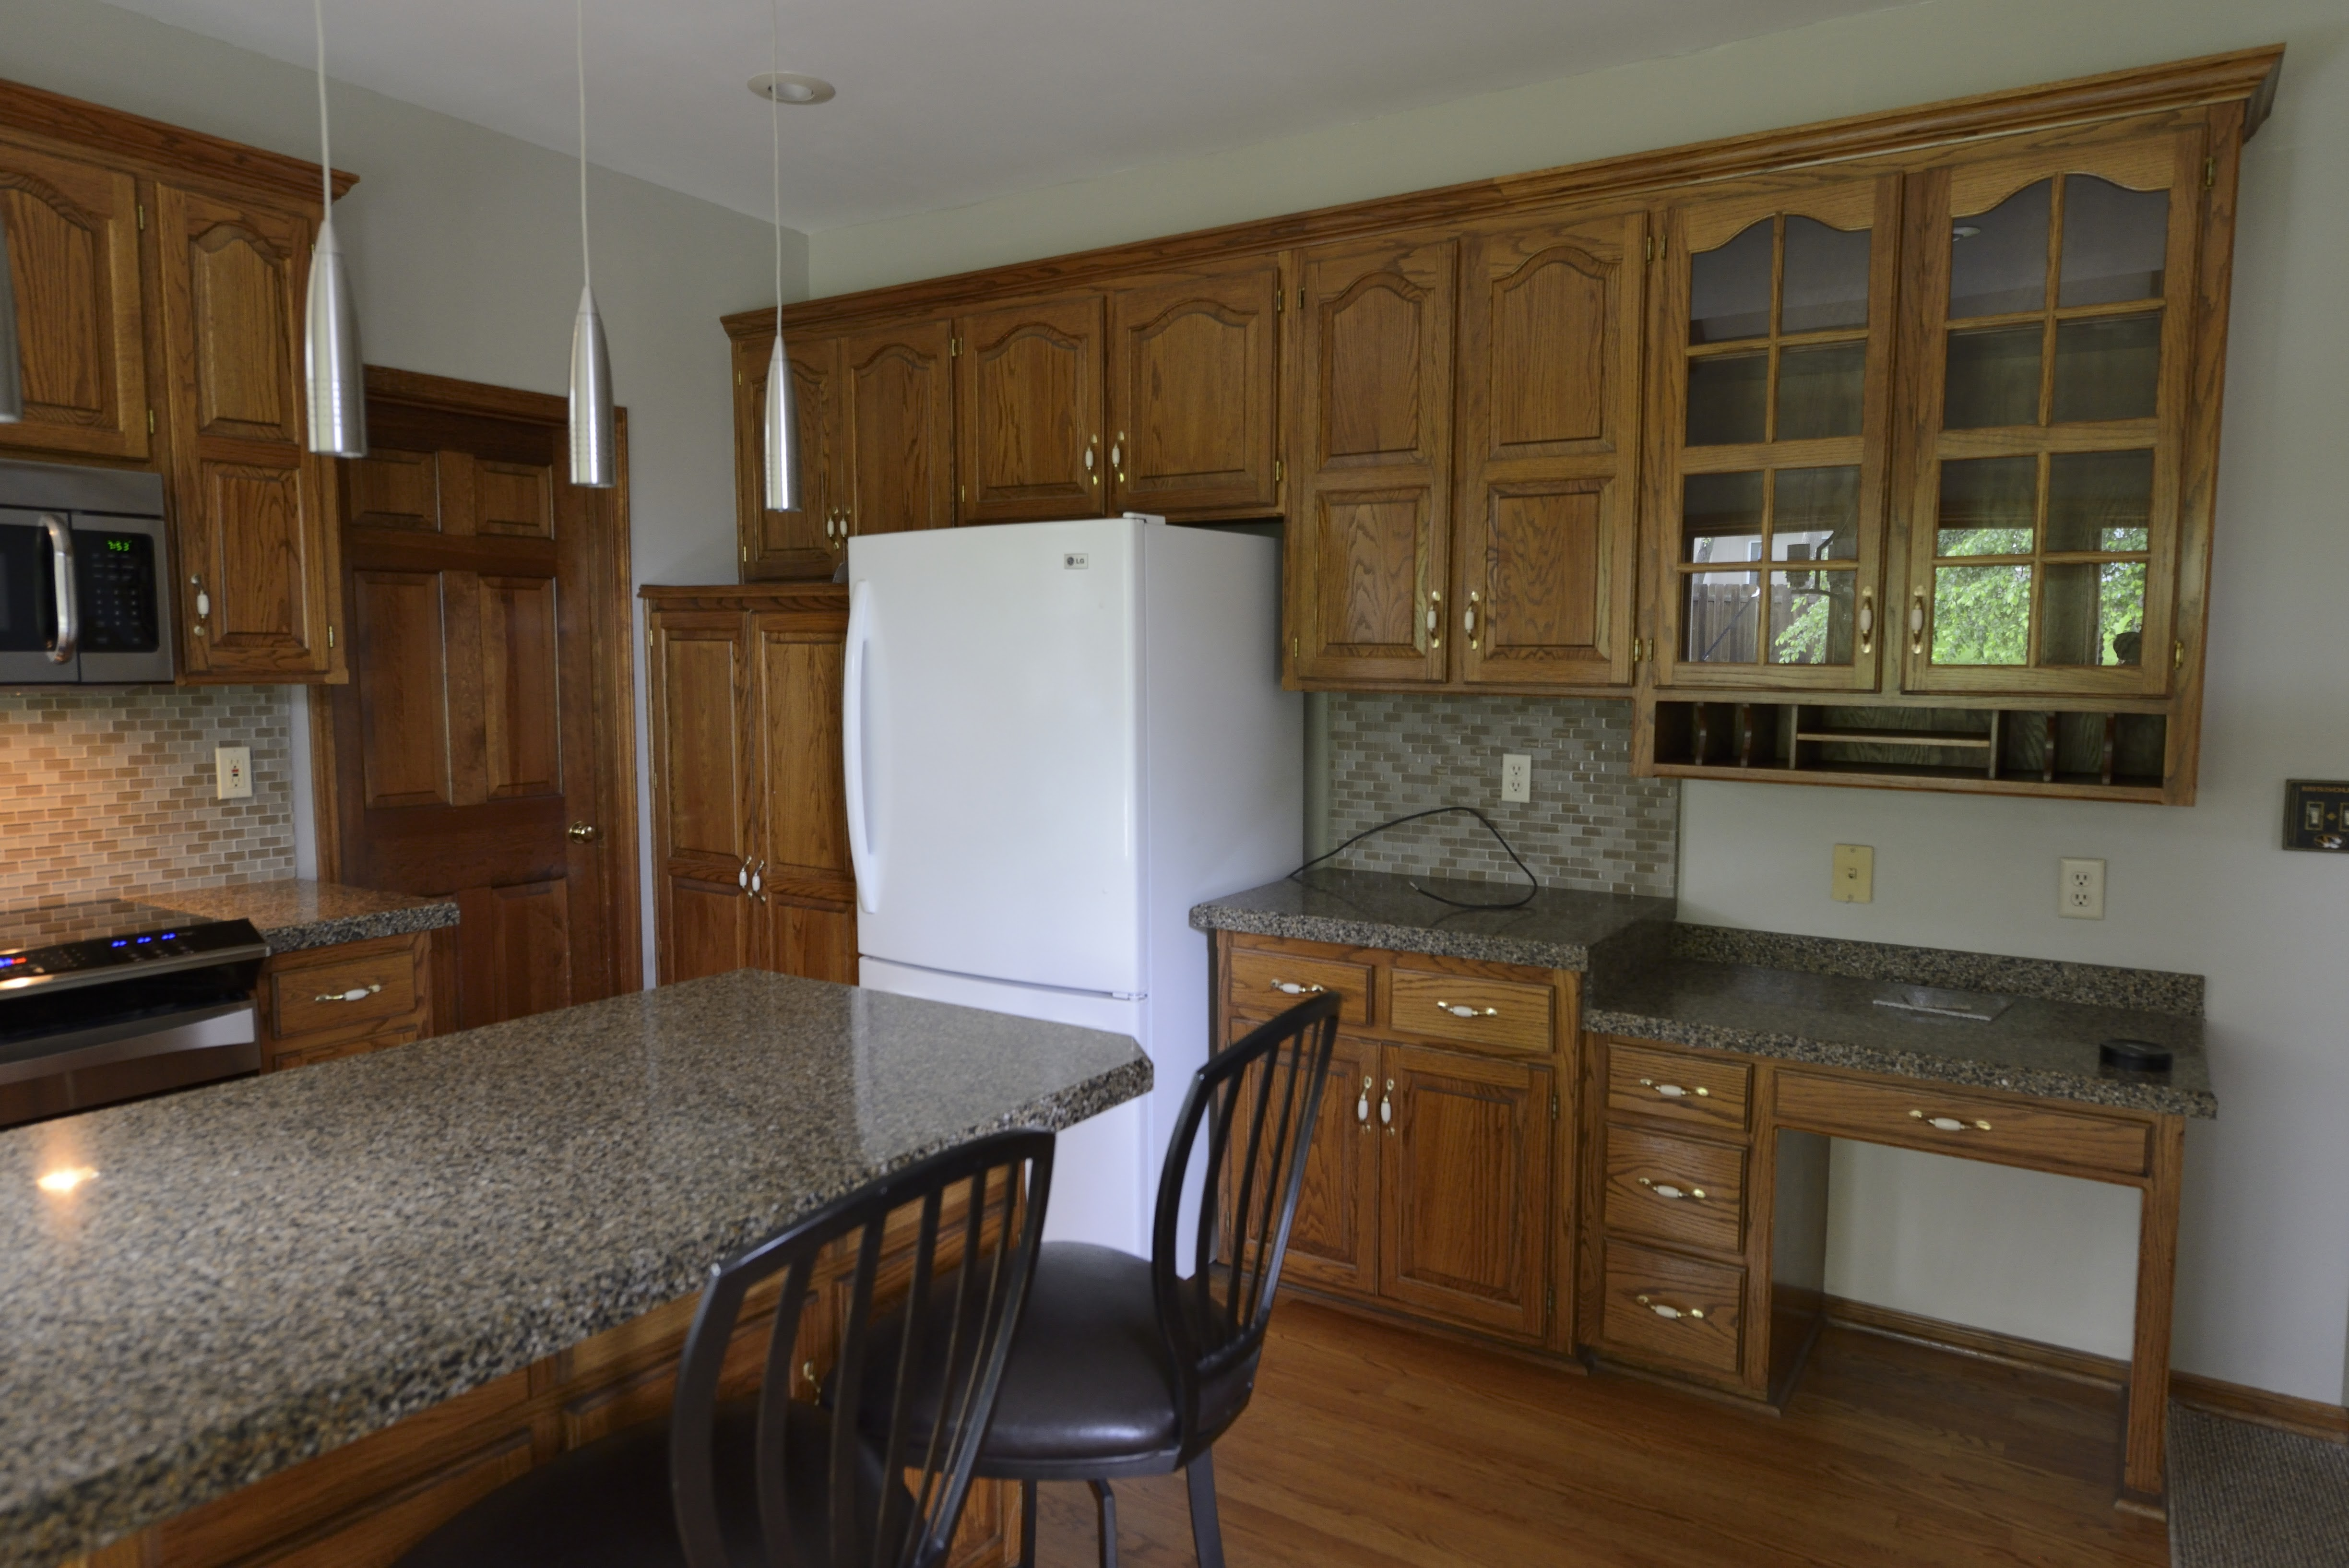 Kitchen Cabinets Cabinet Refacing